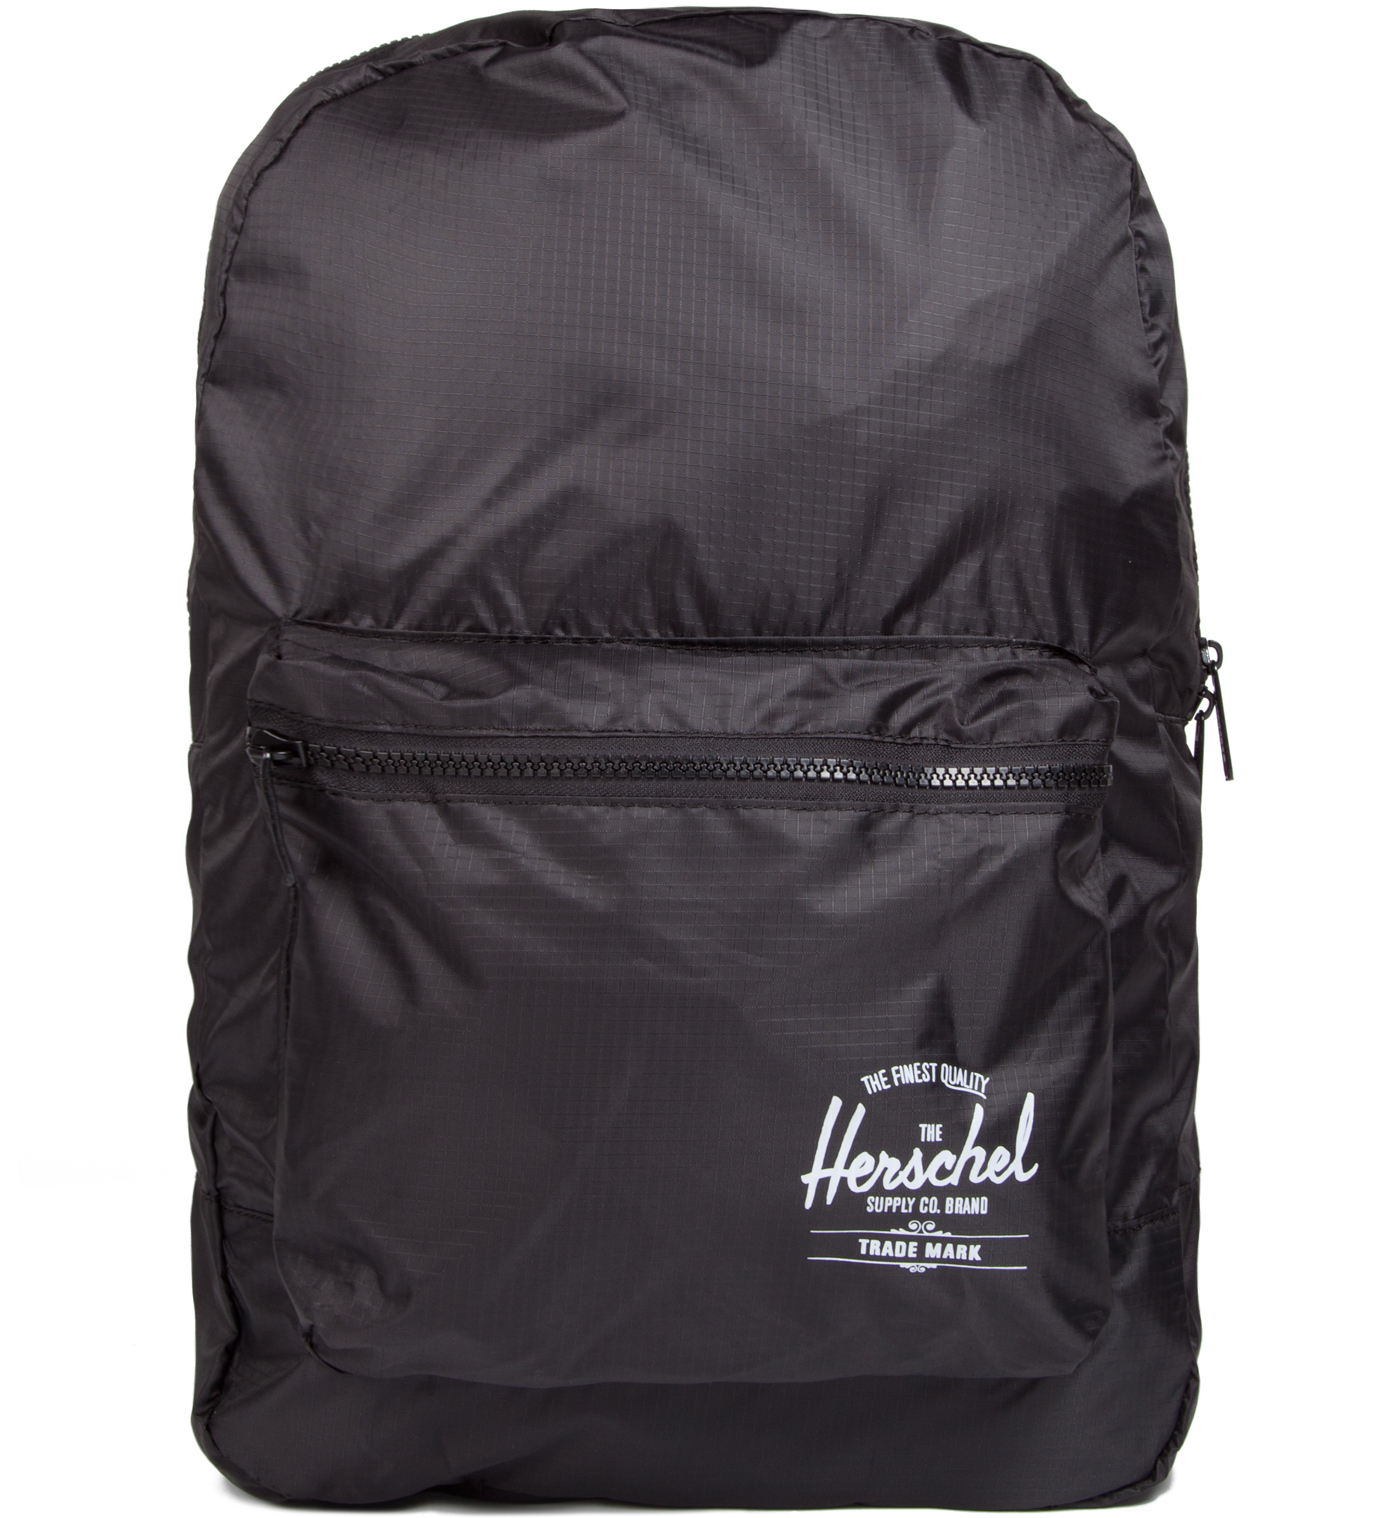 Herschel Supply Co. Black Packable Daypack